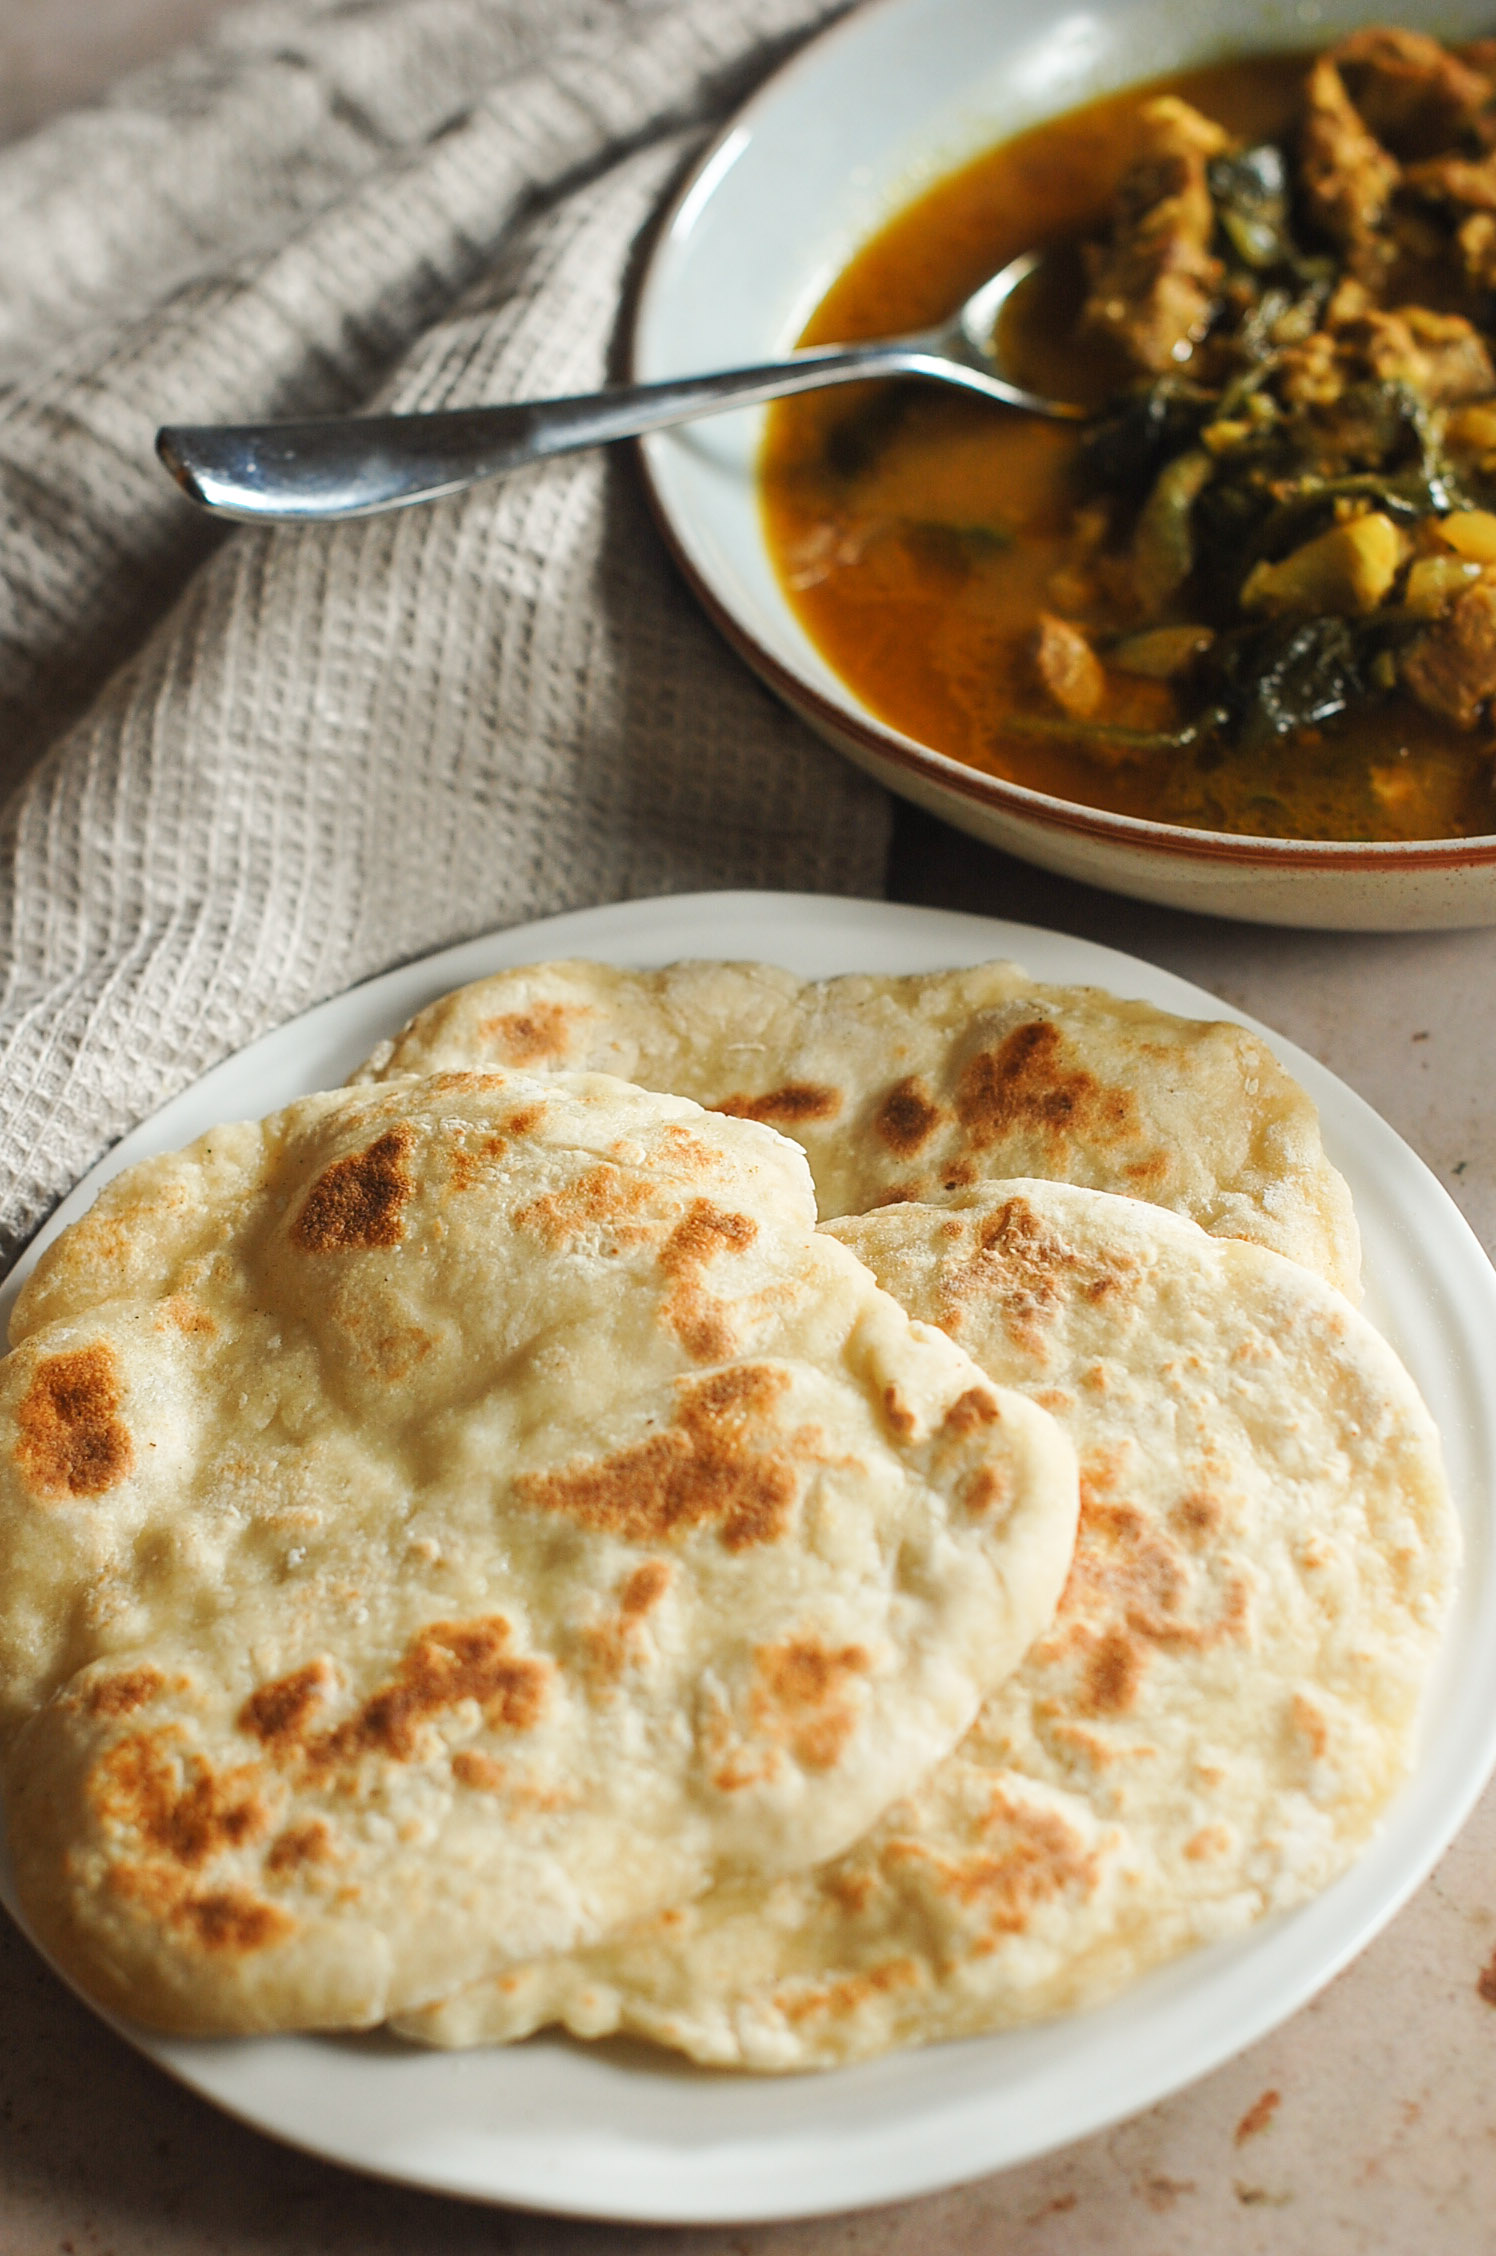 Naan bread with curry in the background